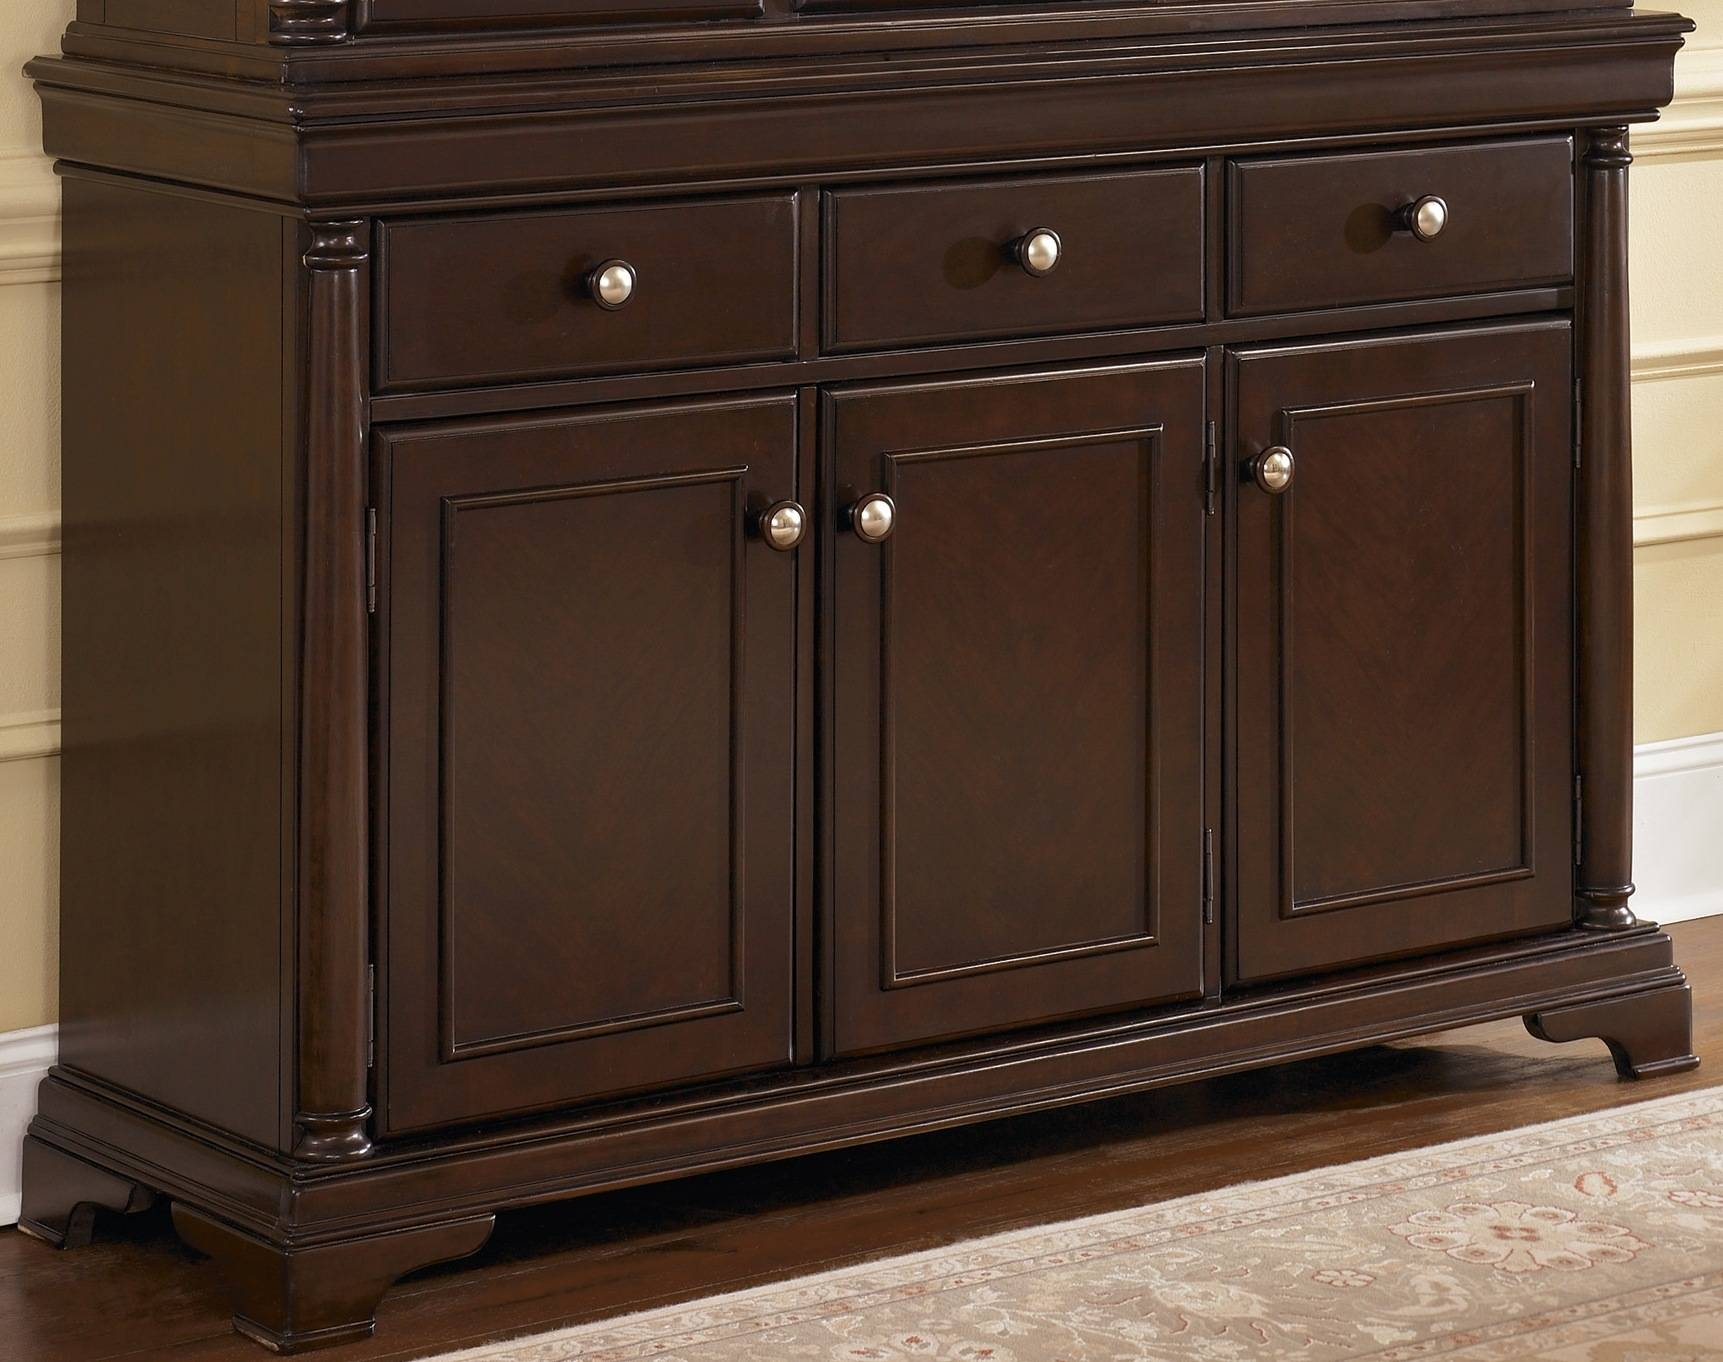 Dining Room Credenza Ideas Including Buffet Cabinet Pictures pertaining to Black Dining Room Sideboards (Image 8 of 15)